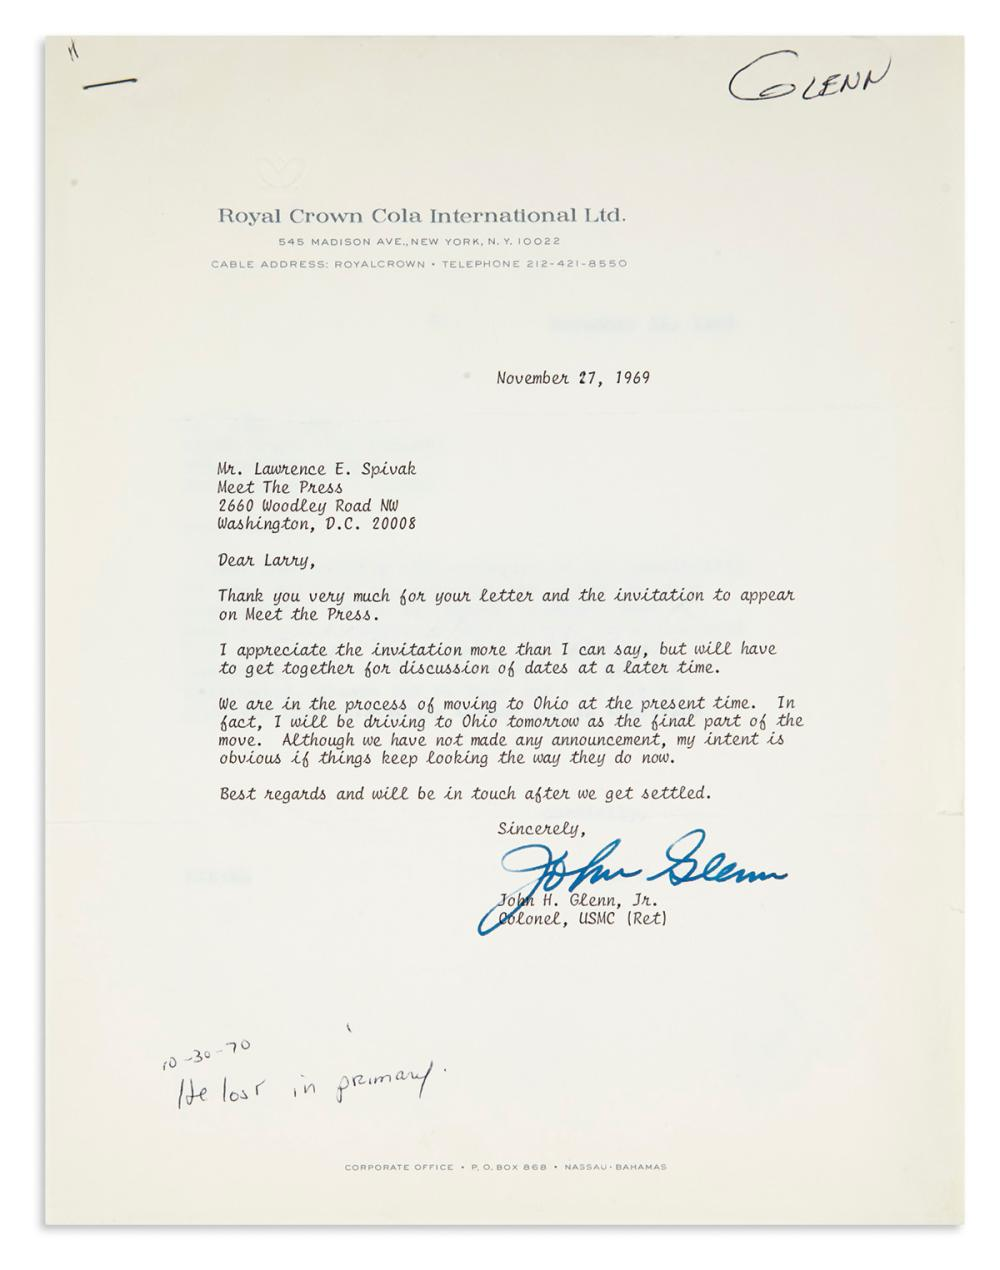 (ASTRONAUTS.) Group of 5 Typed Letters Signed, to Meet the Press co-founder Lawrence E. Spivak: John Glenn (2) * Walter M. Schirra * Fr